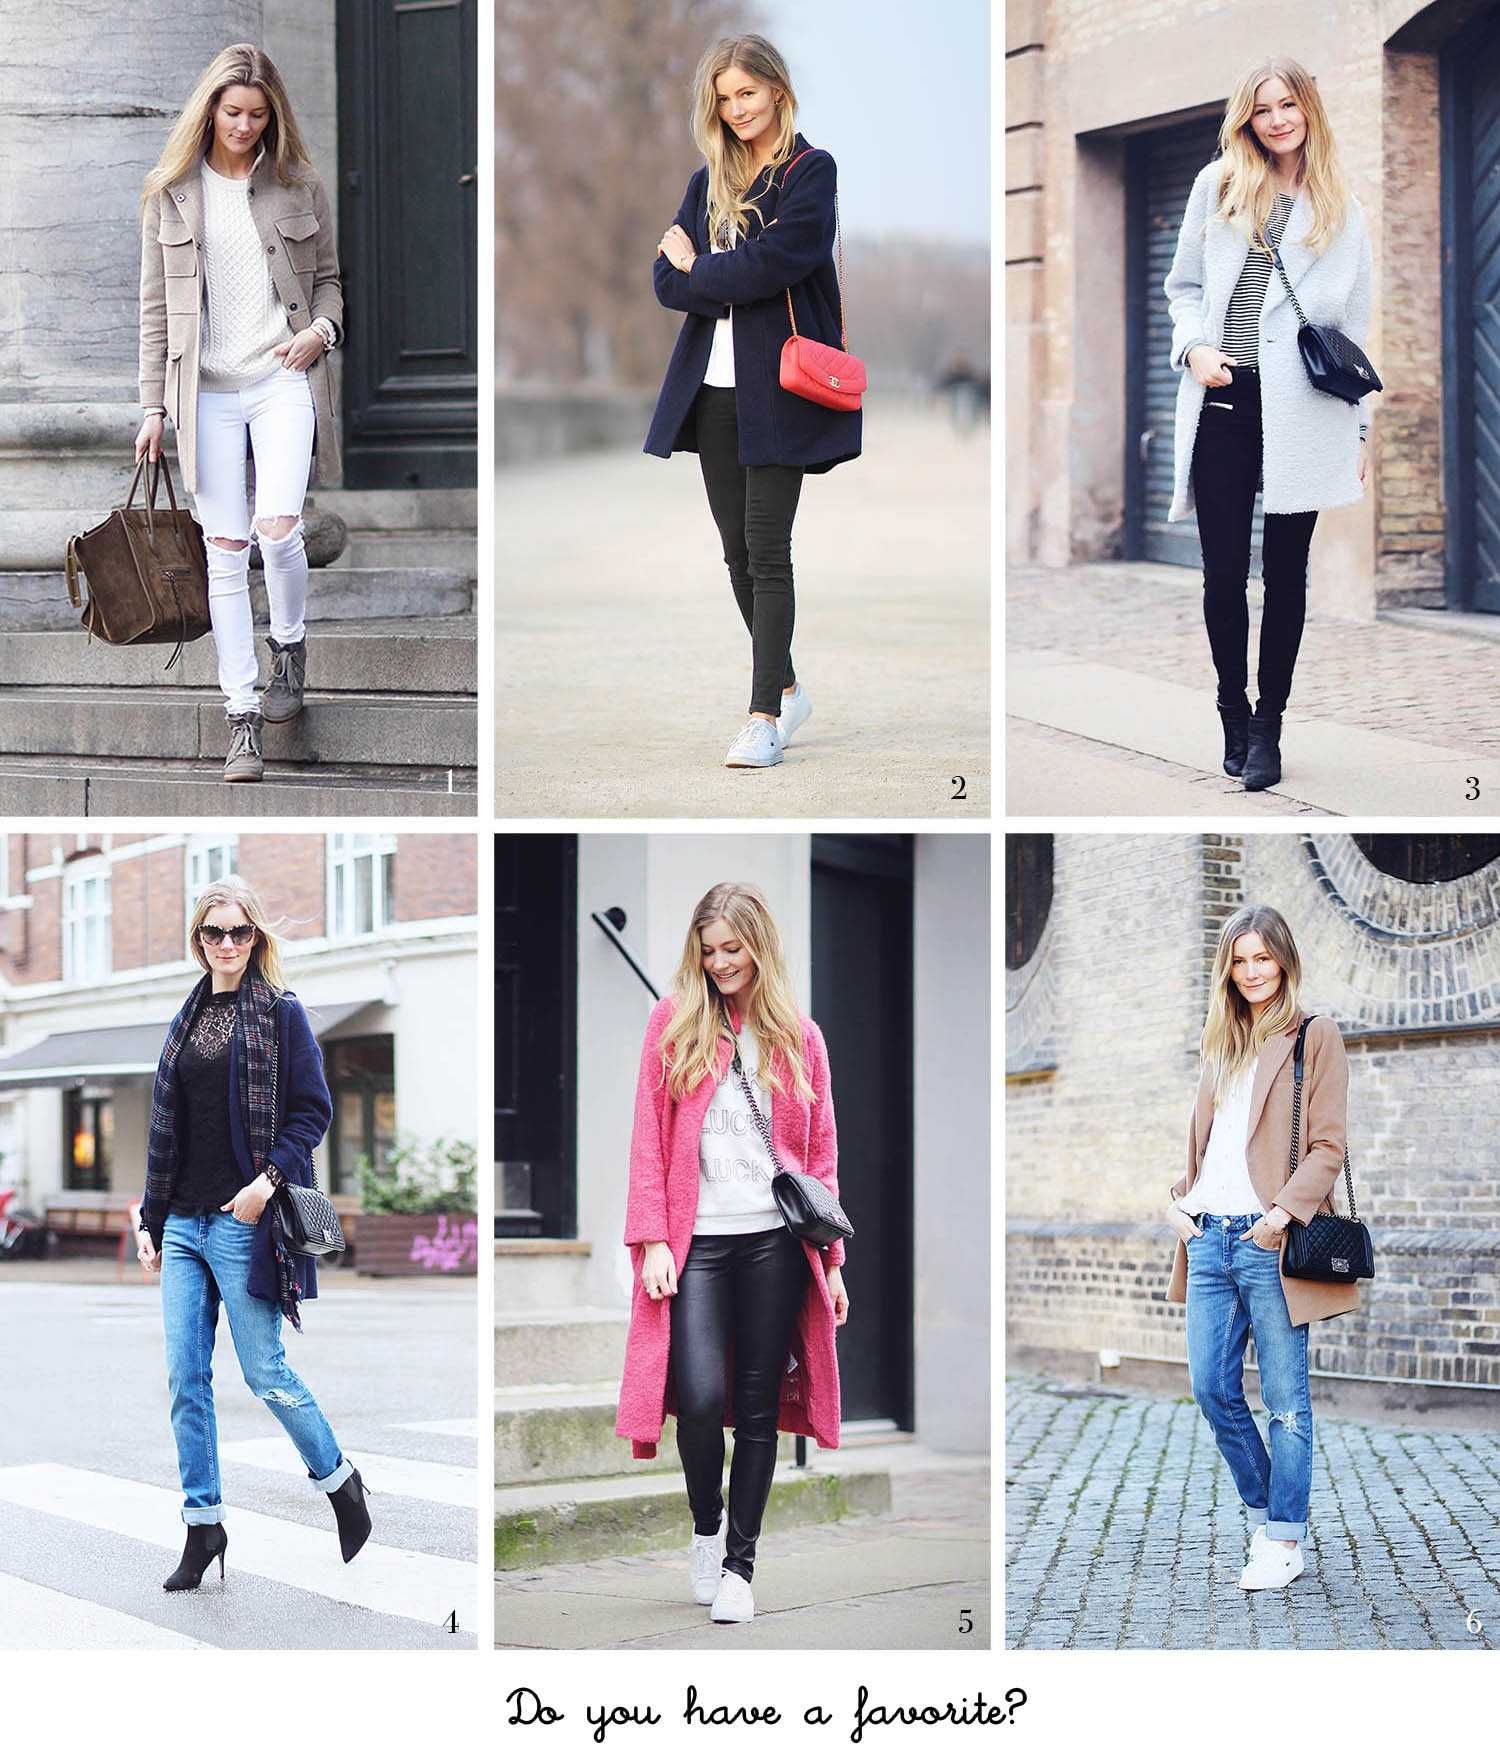 outfits streetstyle@2x